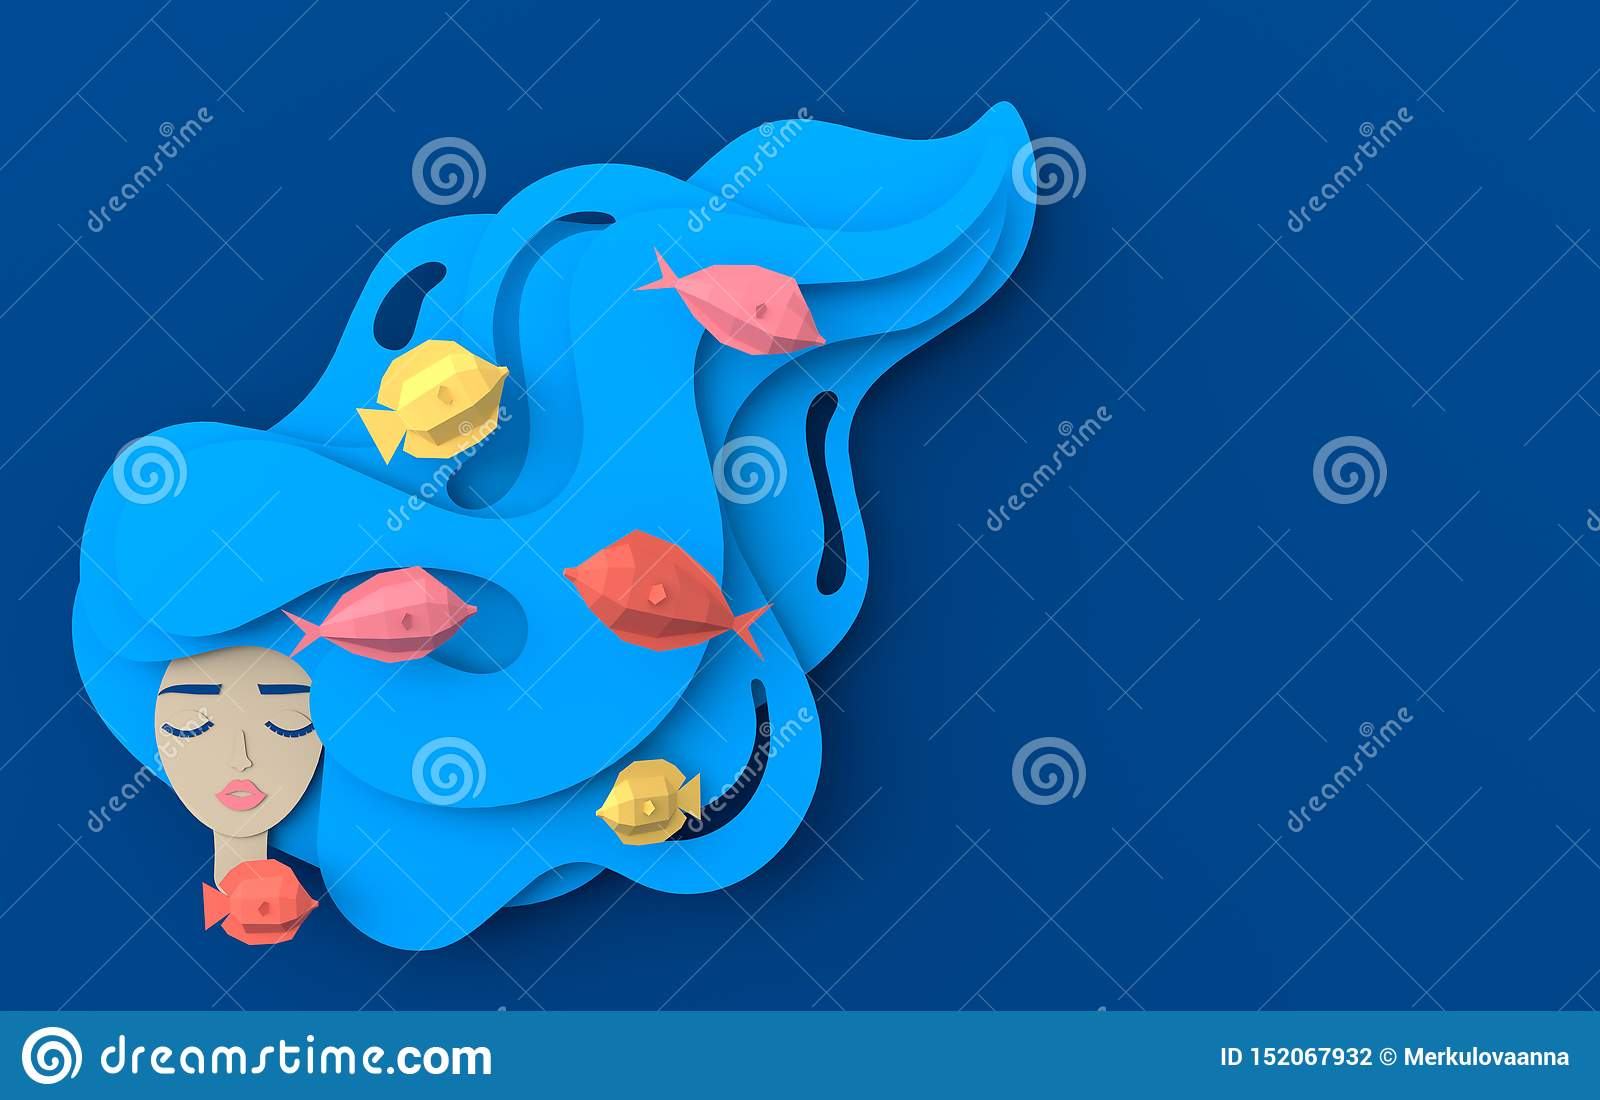 3d render portrait of young beautiful woman mermaid with long wavy hair. Paper underwater sea life with fishes, waves. Paper cut